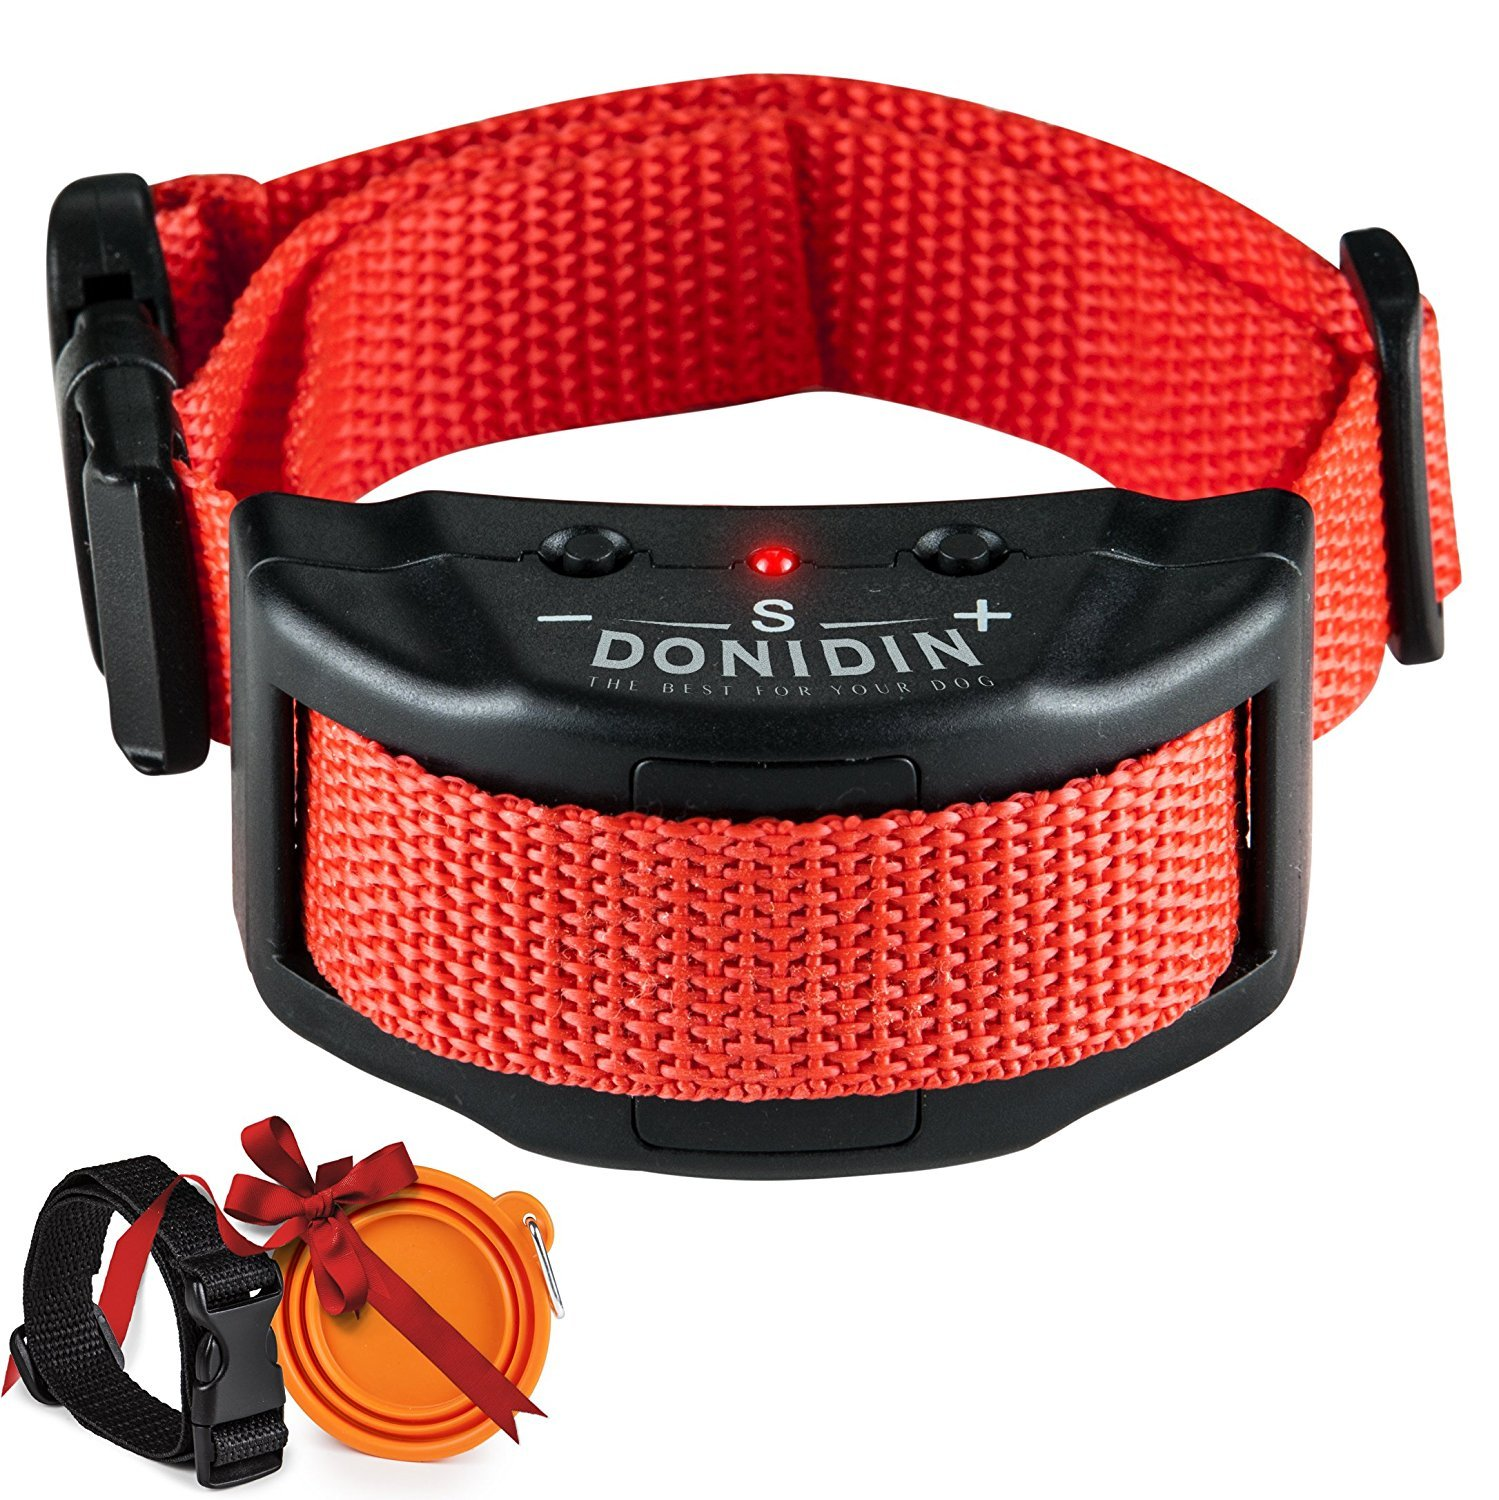 No Bark Dog Collar Safely Stops Incessant Barking 7 Sensitivity Levels for Small Medium & Large Dogs (18-120 lbs.) Uses Humane & Static Stimulation with Extra Bonuses by Donidin